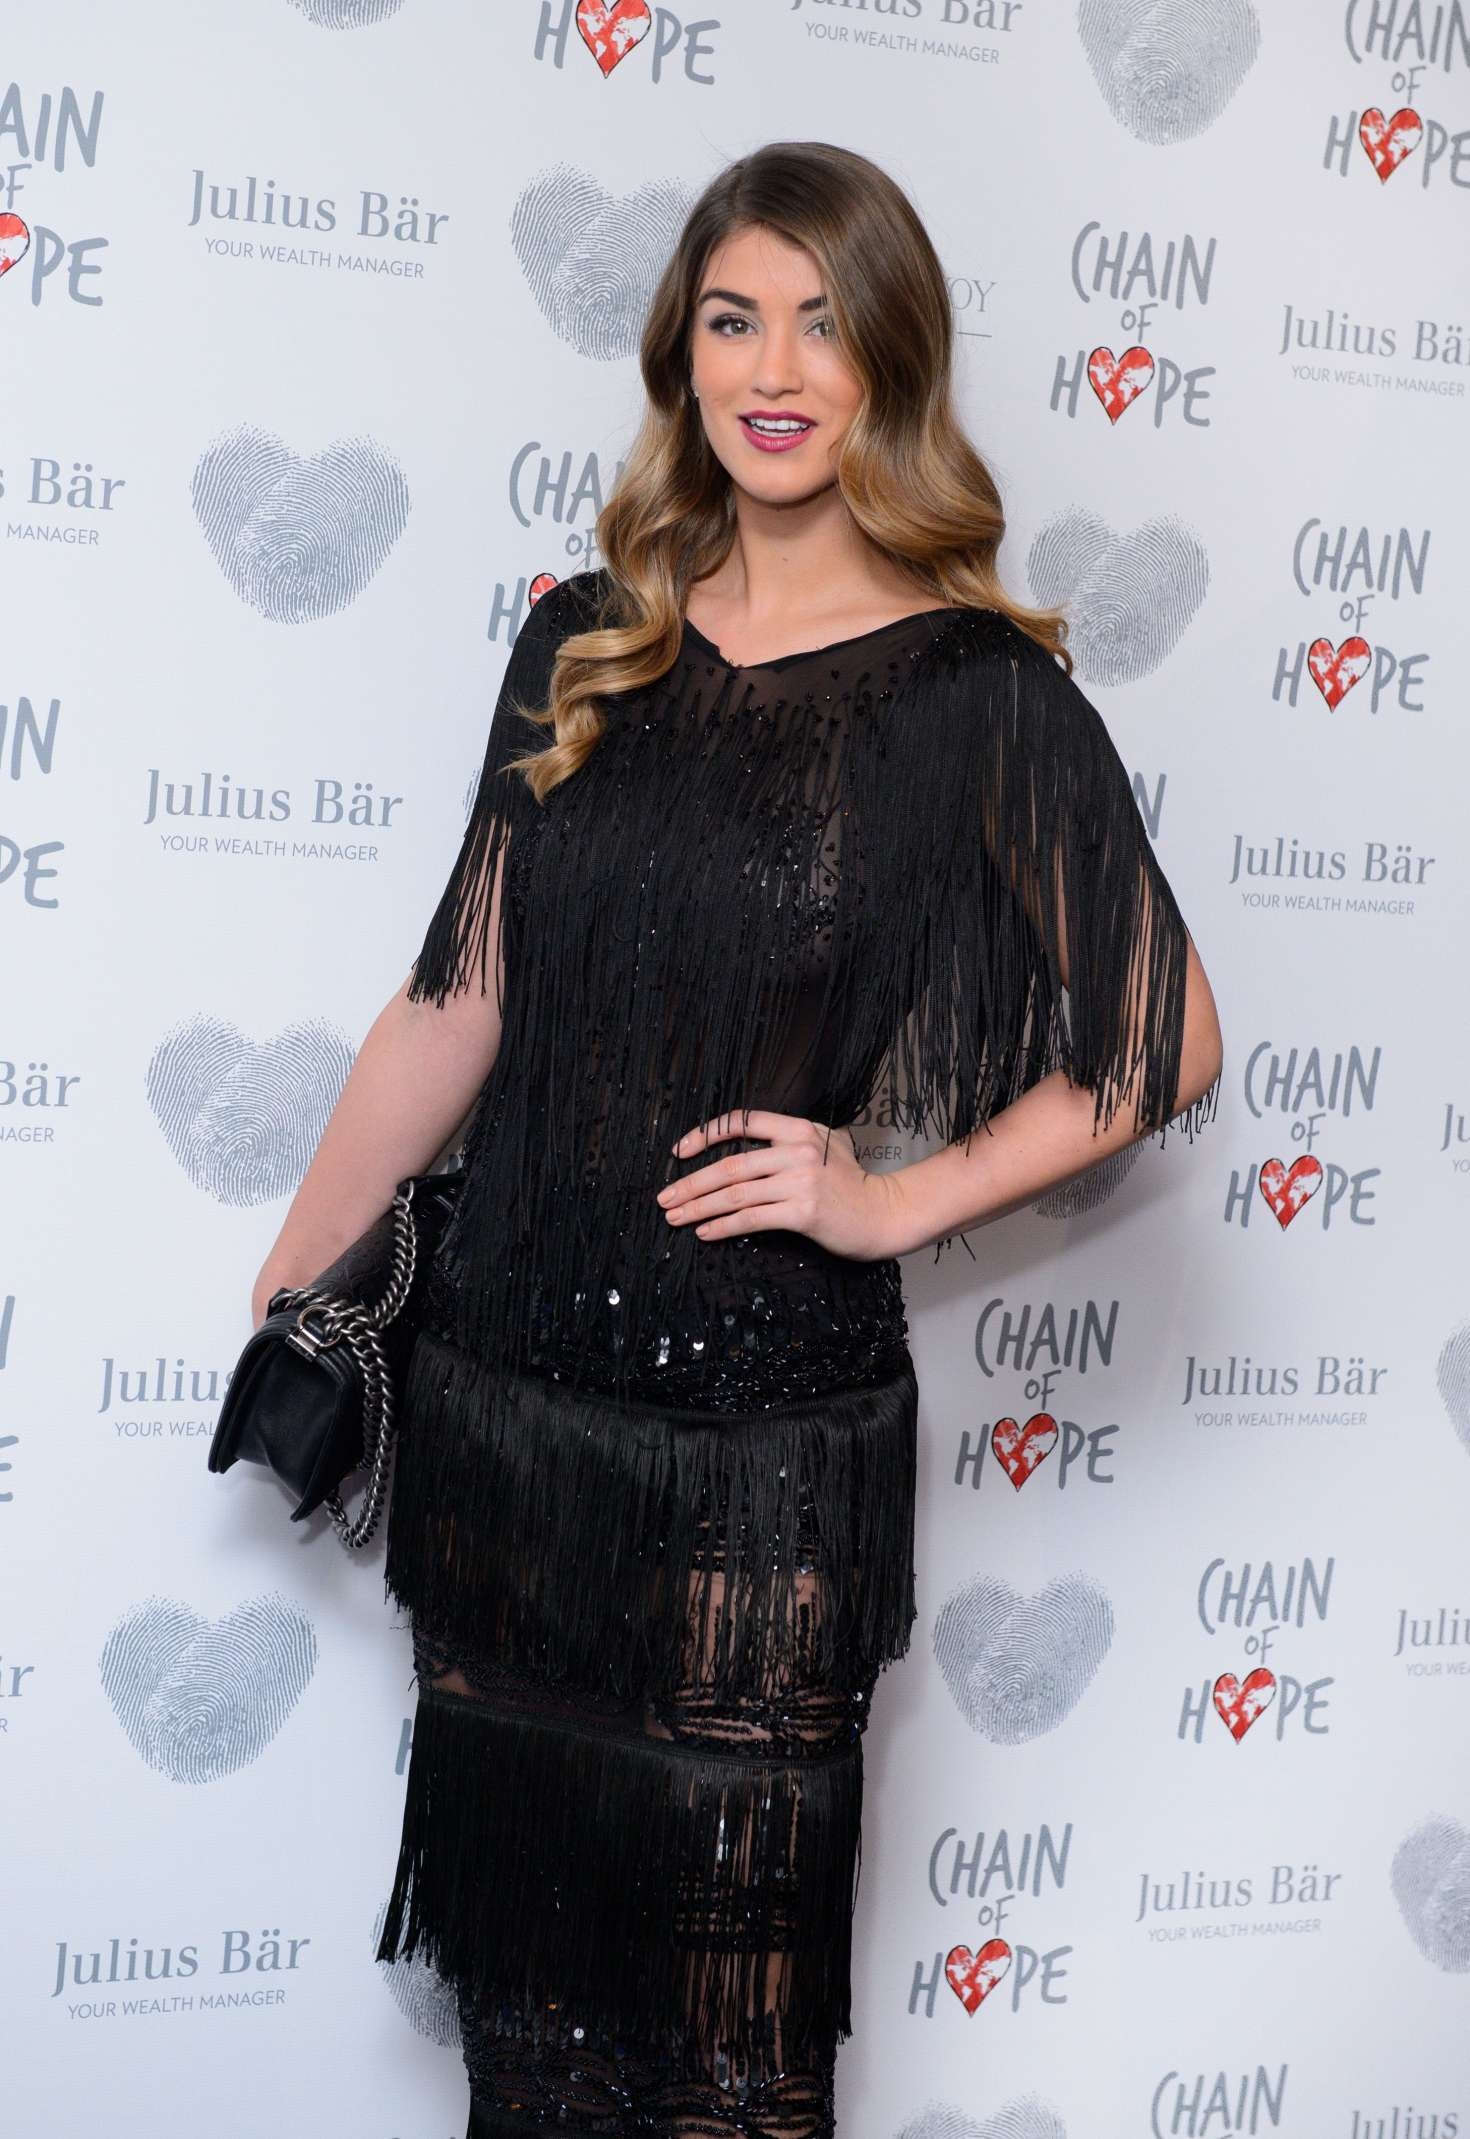 Amy Willerton 2016 : Amy Willerton: Chain Of Hope Annual Gala Ball 2016 -25